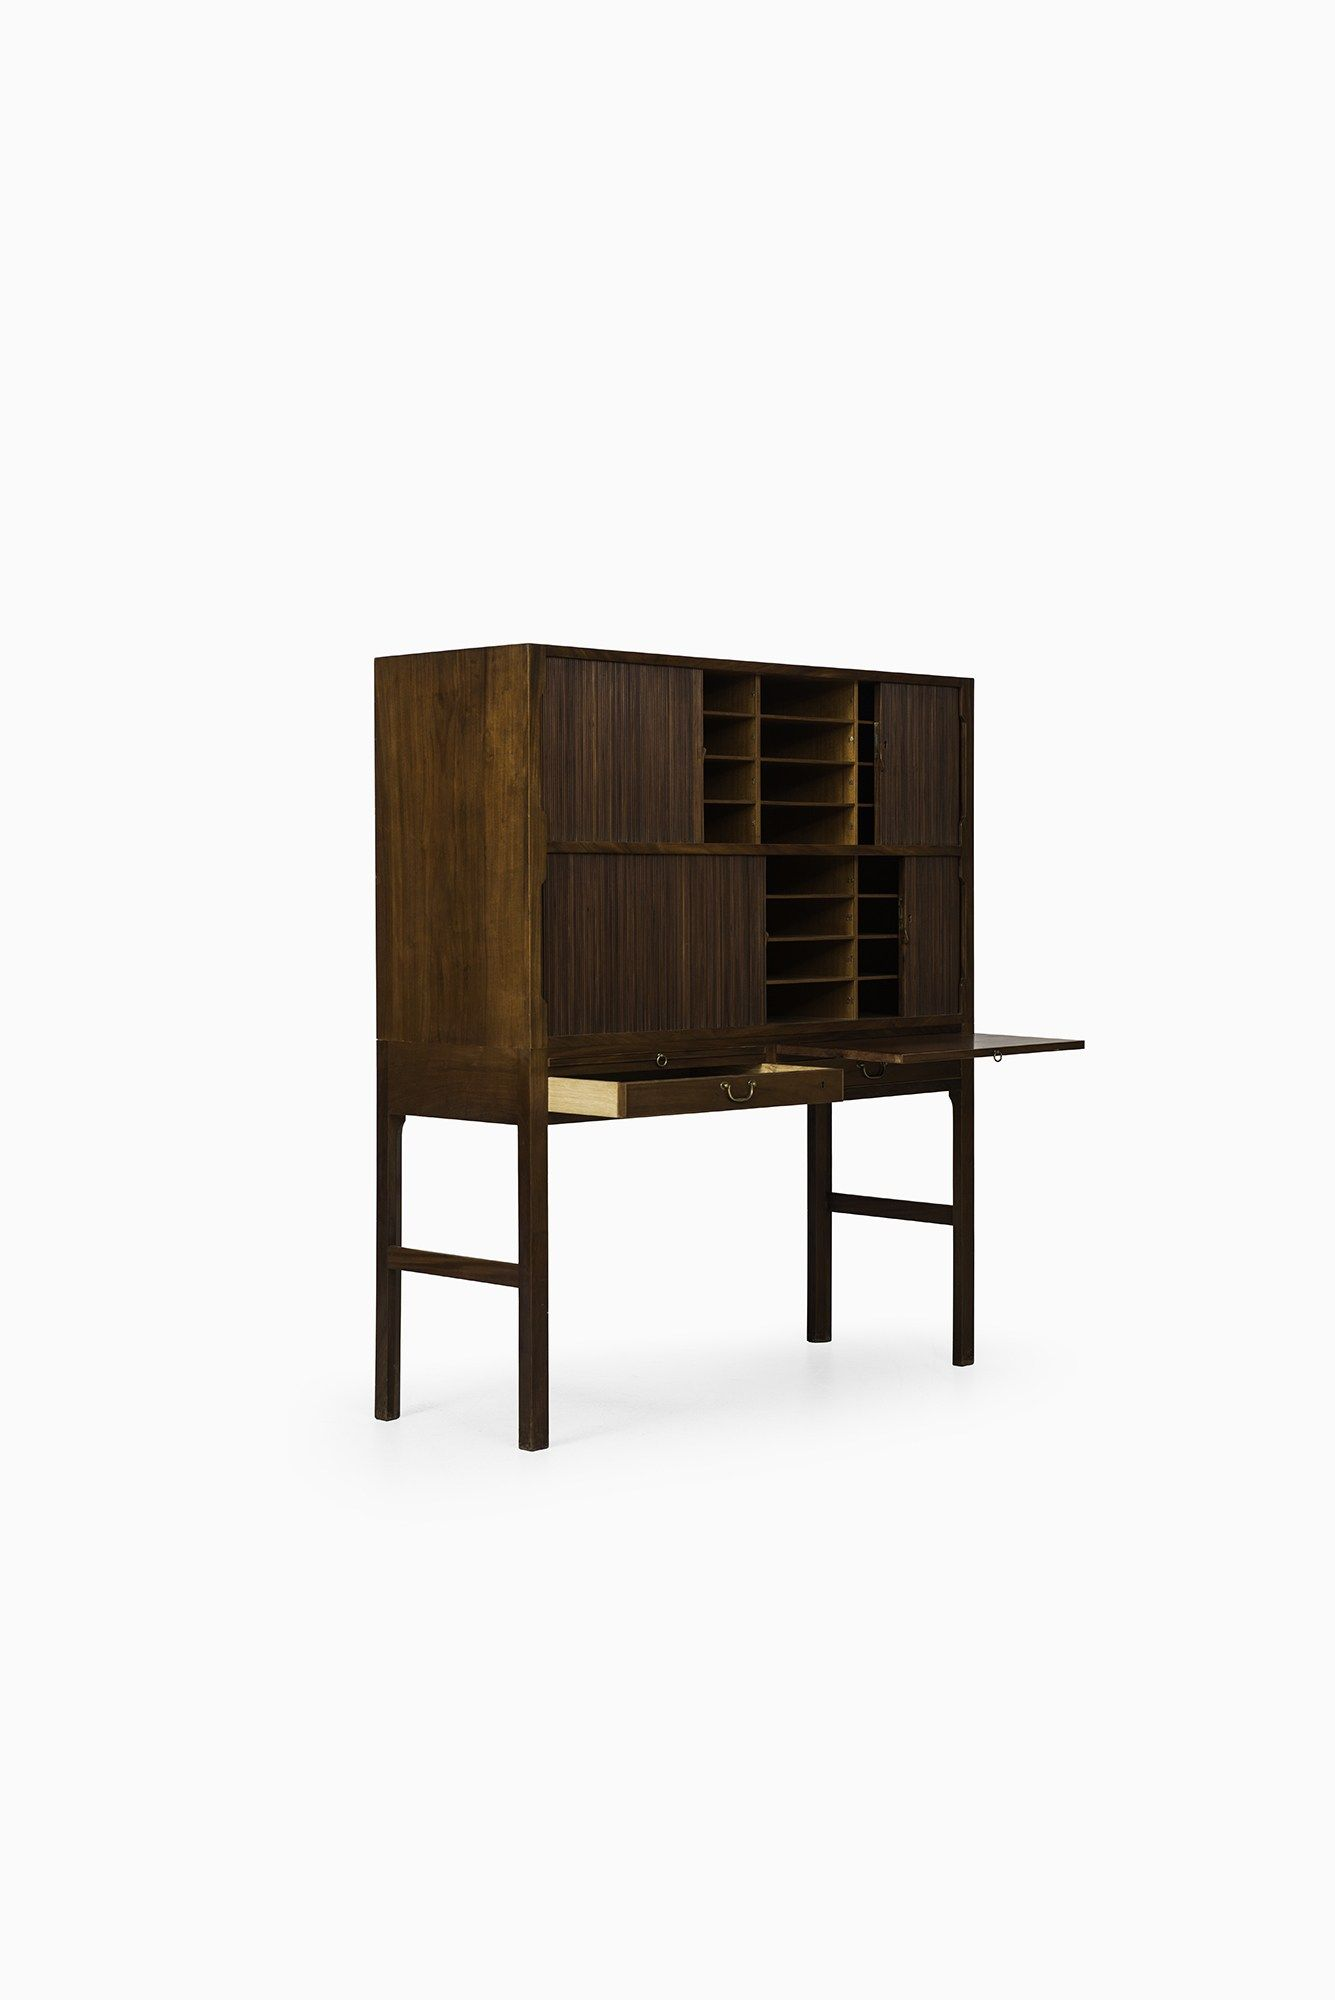 top ten furniture designers. Ole Wanscher Cabinet In Mahogany By A.J. Iversen At Studio Schalling. Famous Furniture DesignersCabinet Top Ten Designers N